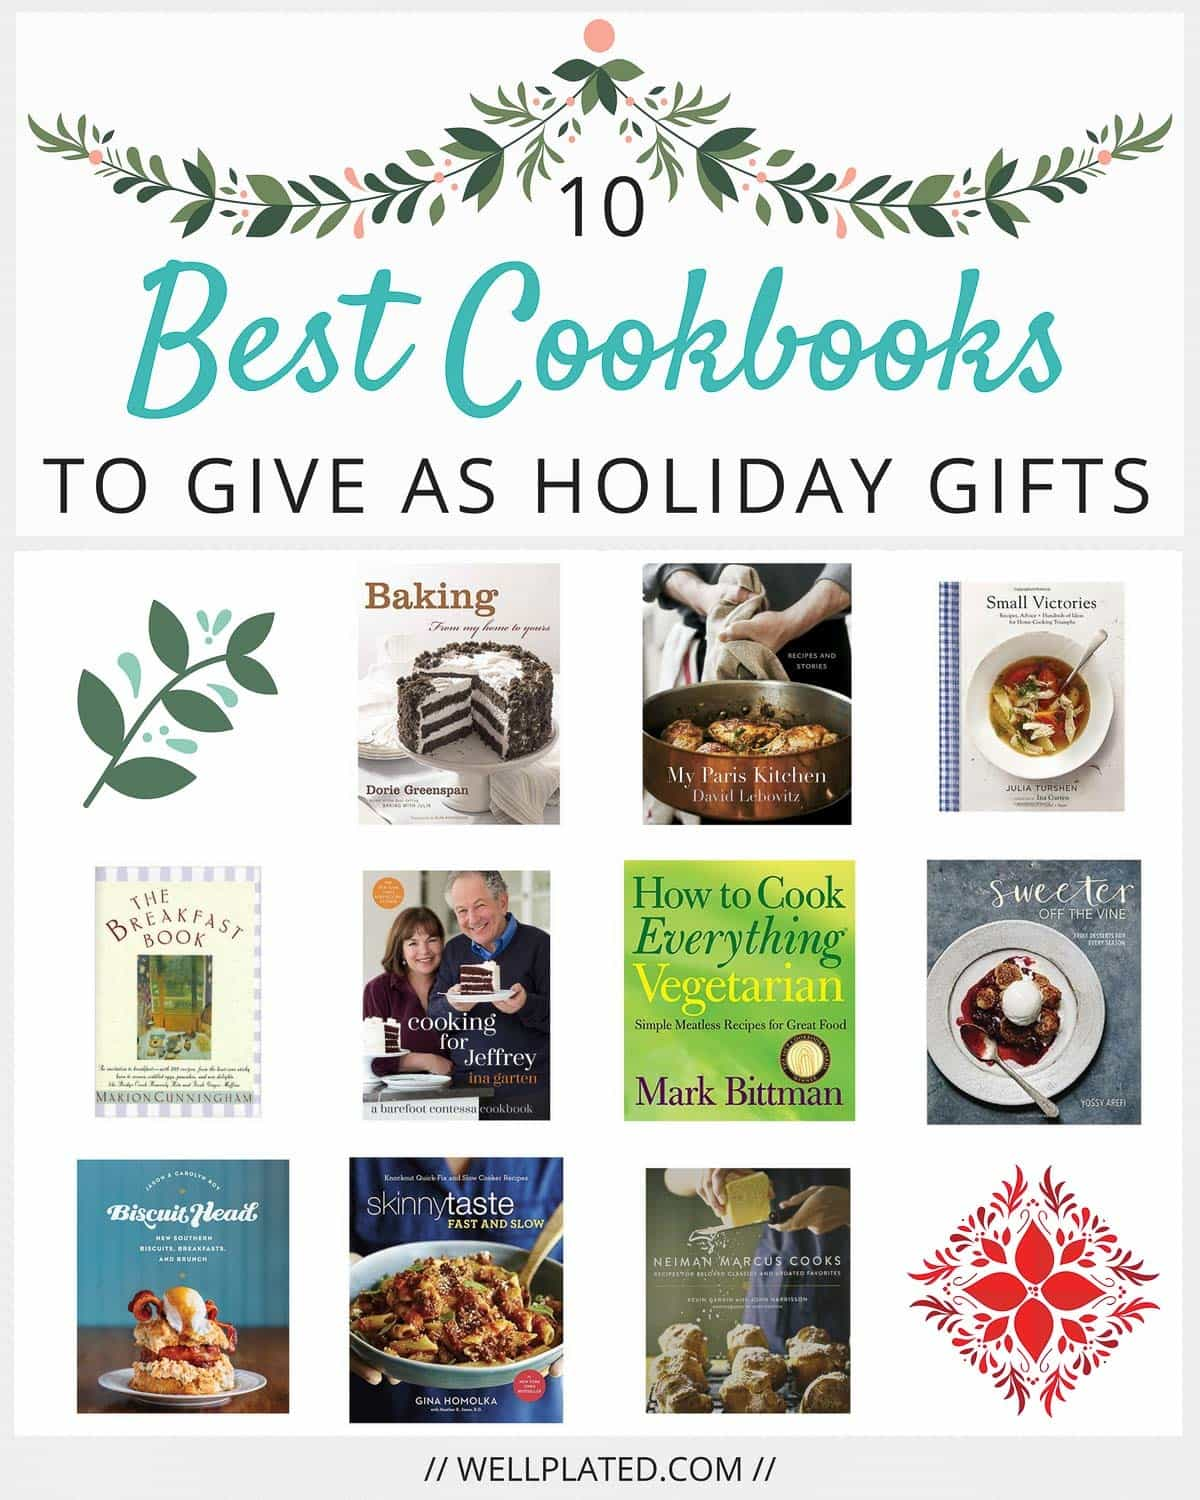 The Best Cookbooks To Give As Wedding Gifts Of 2020: 10 Best Cookbooks To Give As Holiday Gifts